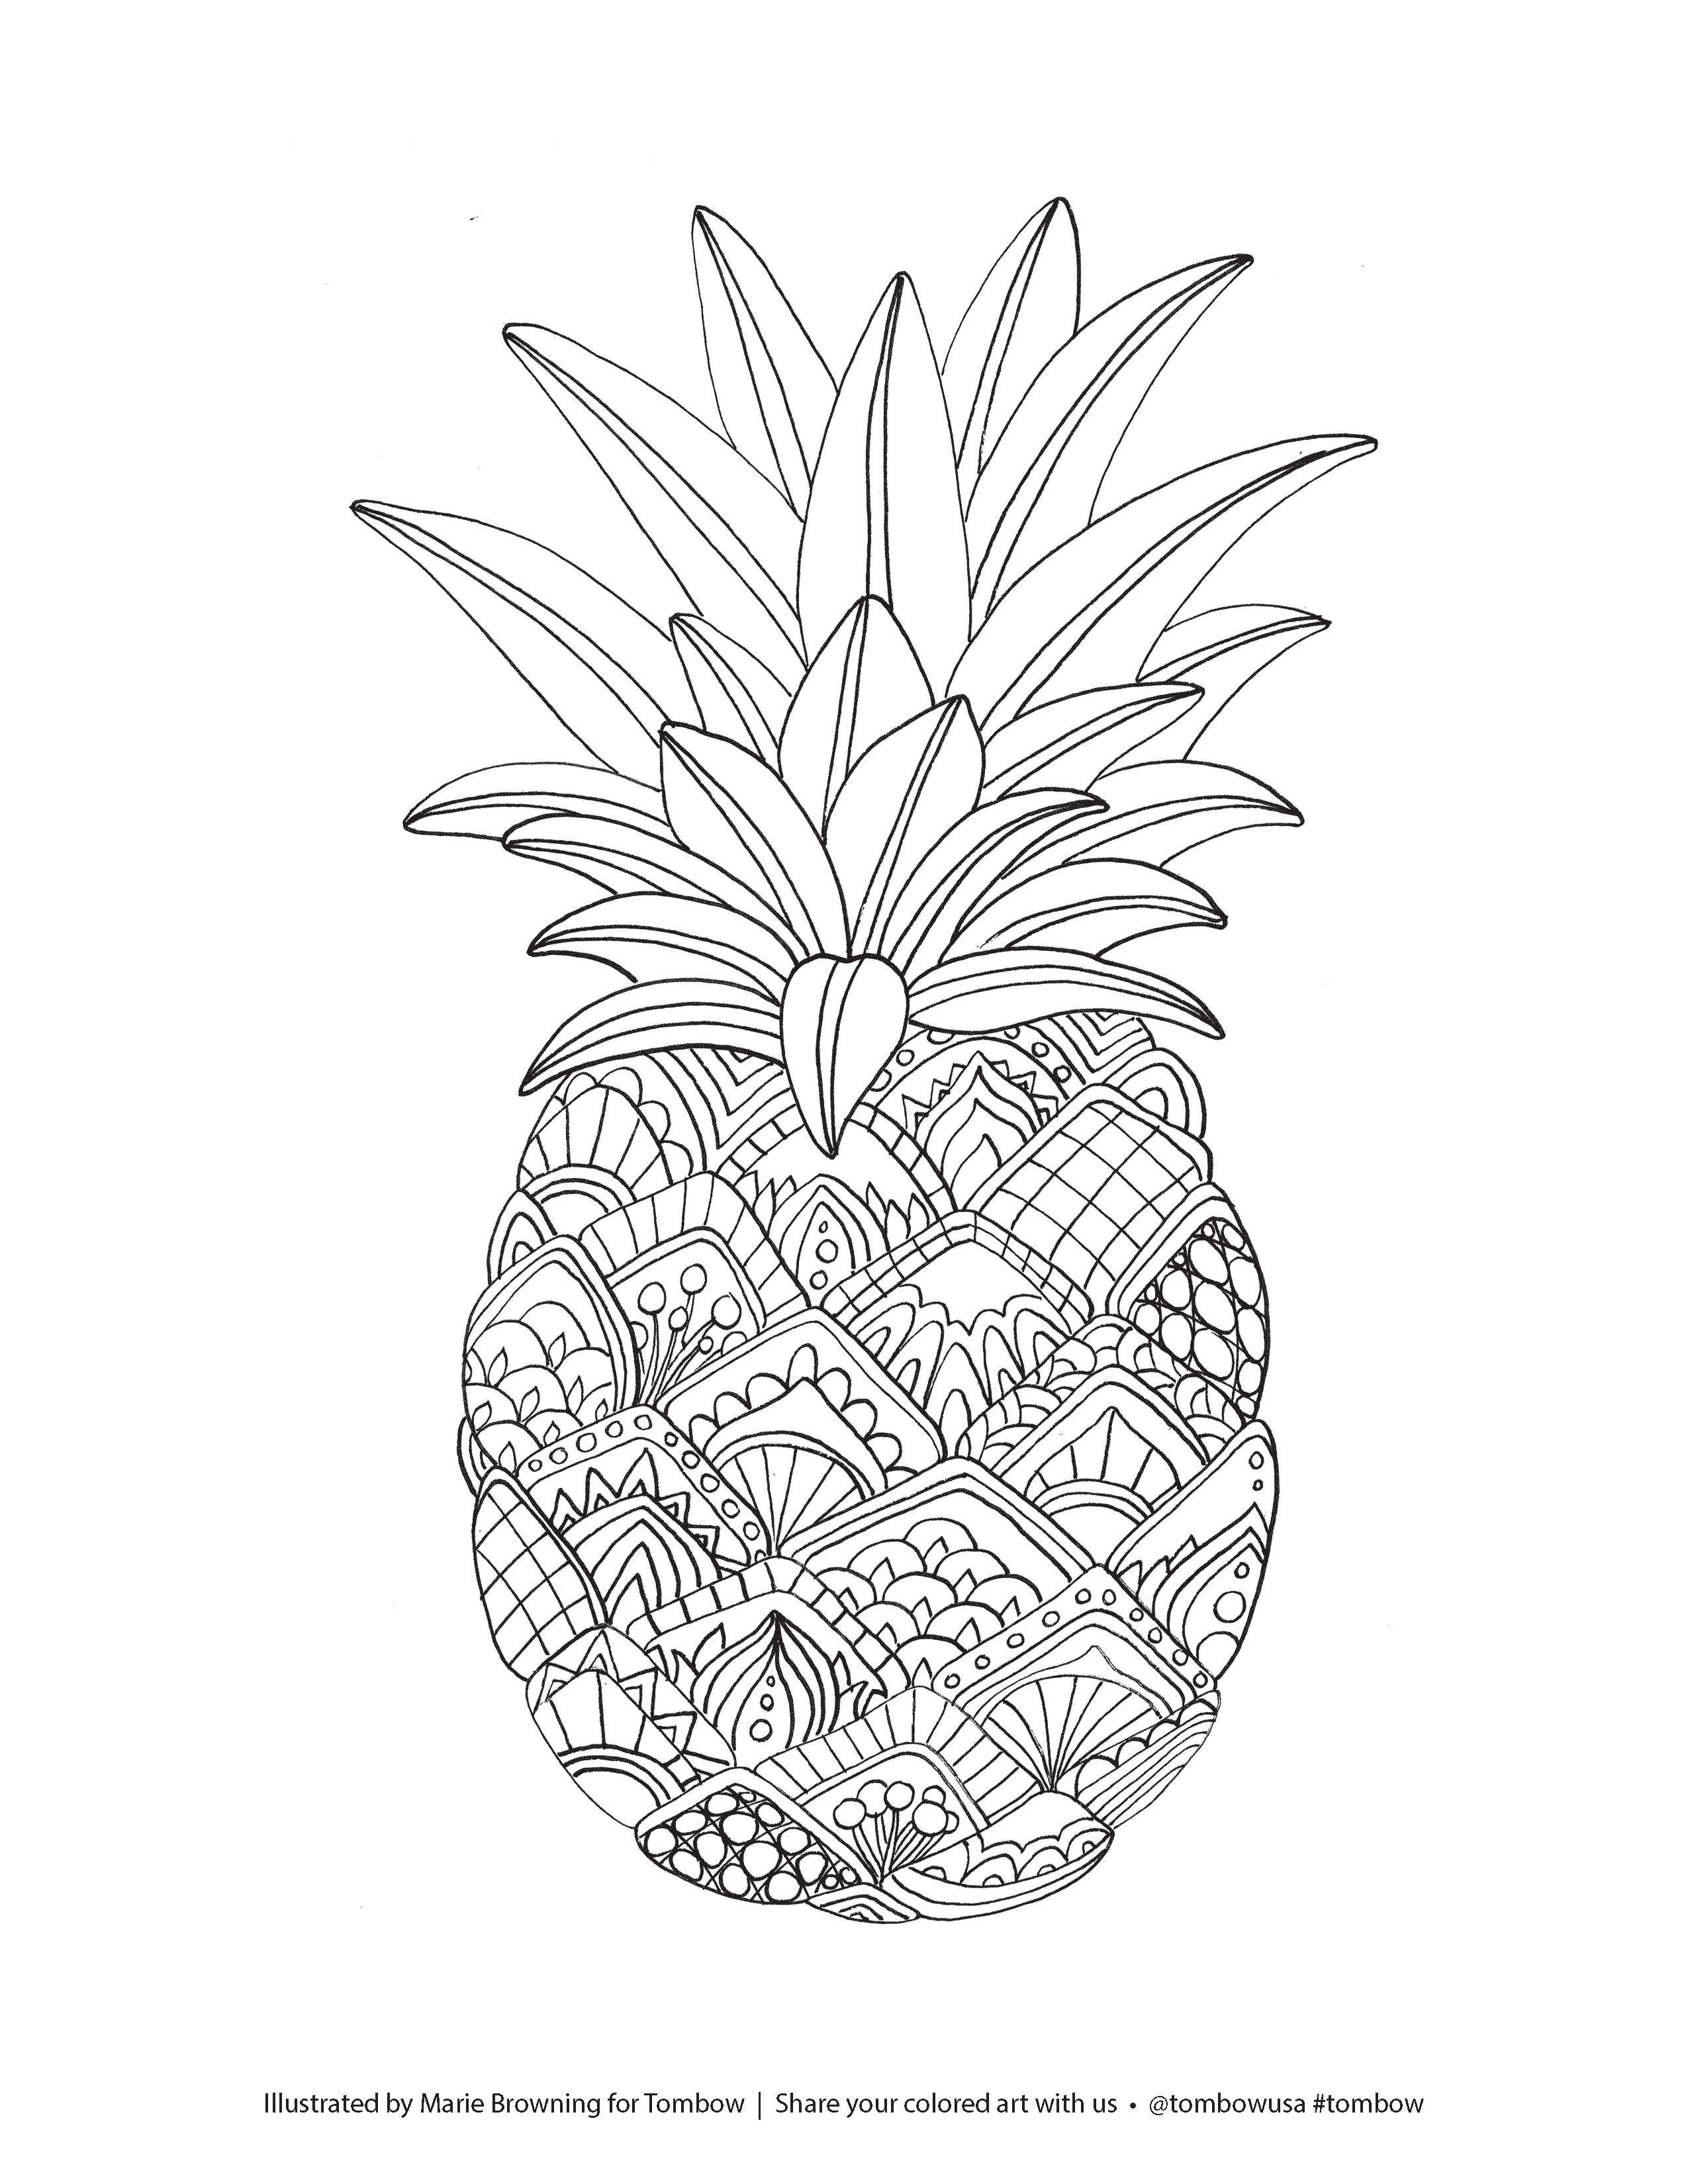 cute pineapple coloring page zentangle pineapple coloring page illustrated by marie page pineapple cute coloring